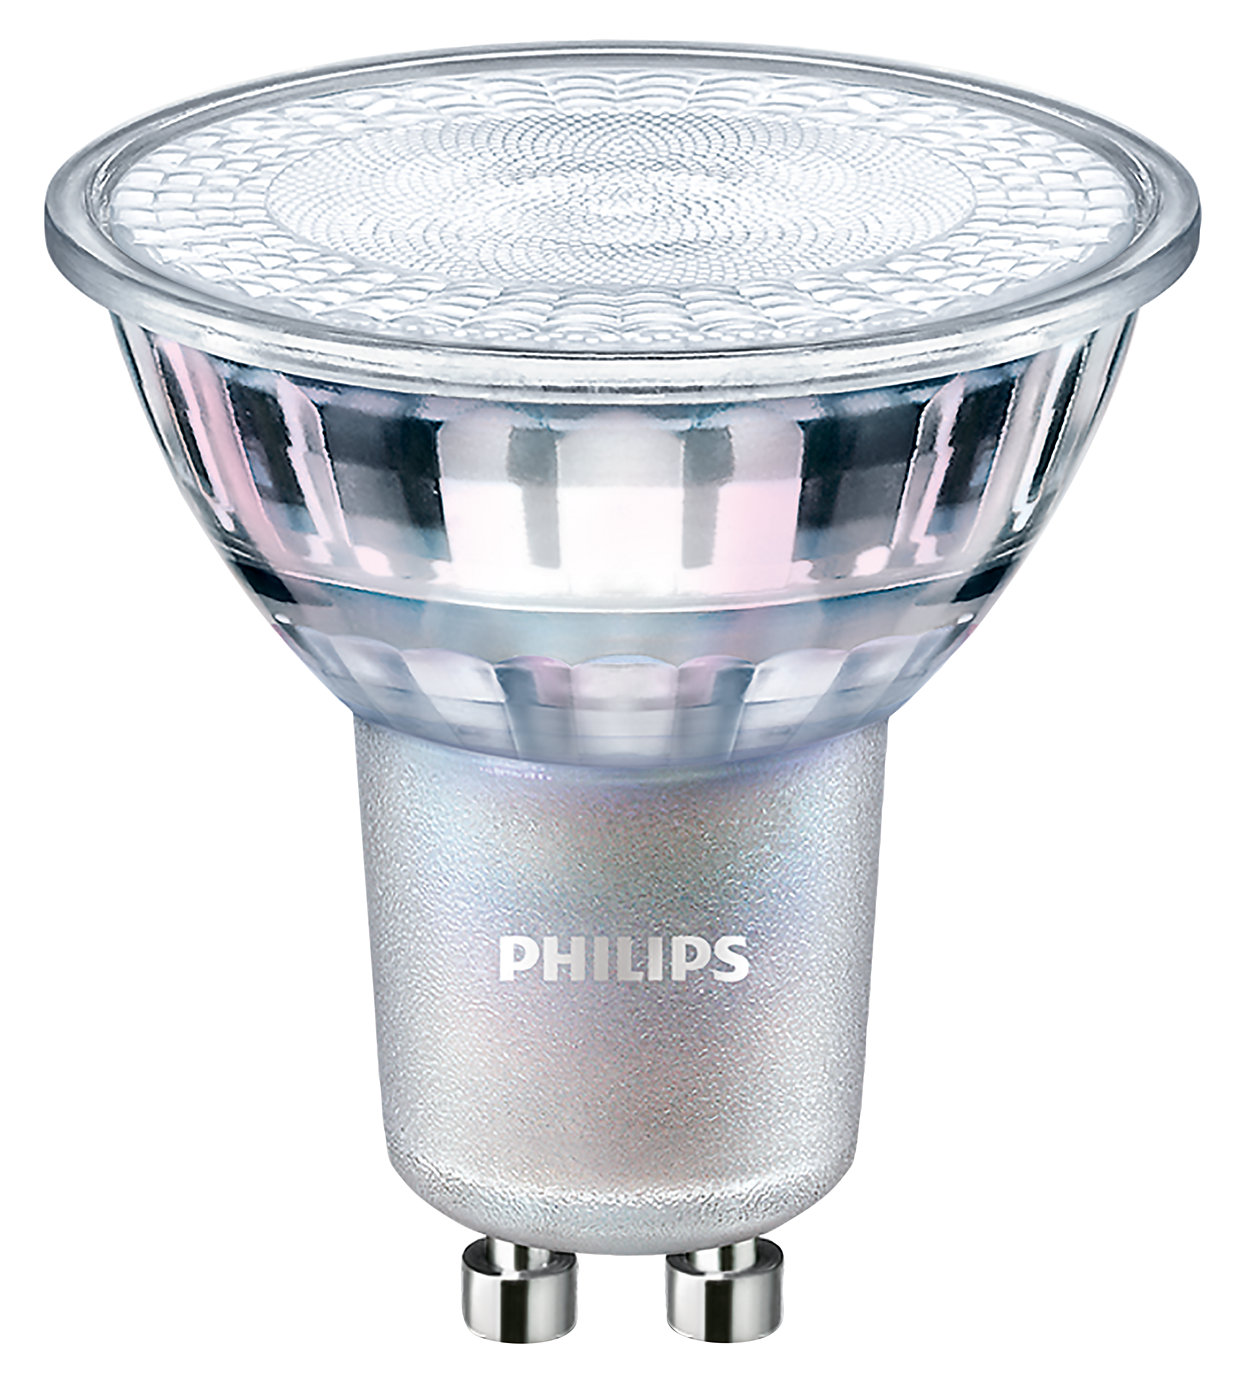 Philips Master Value LEDspot - De perfecte vervanger voor halogeenspots GU10 230V.